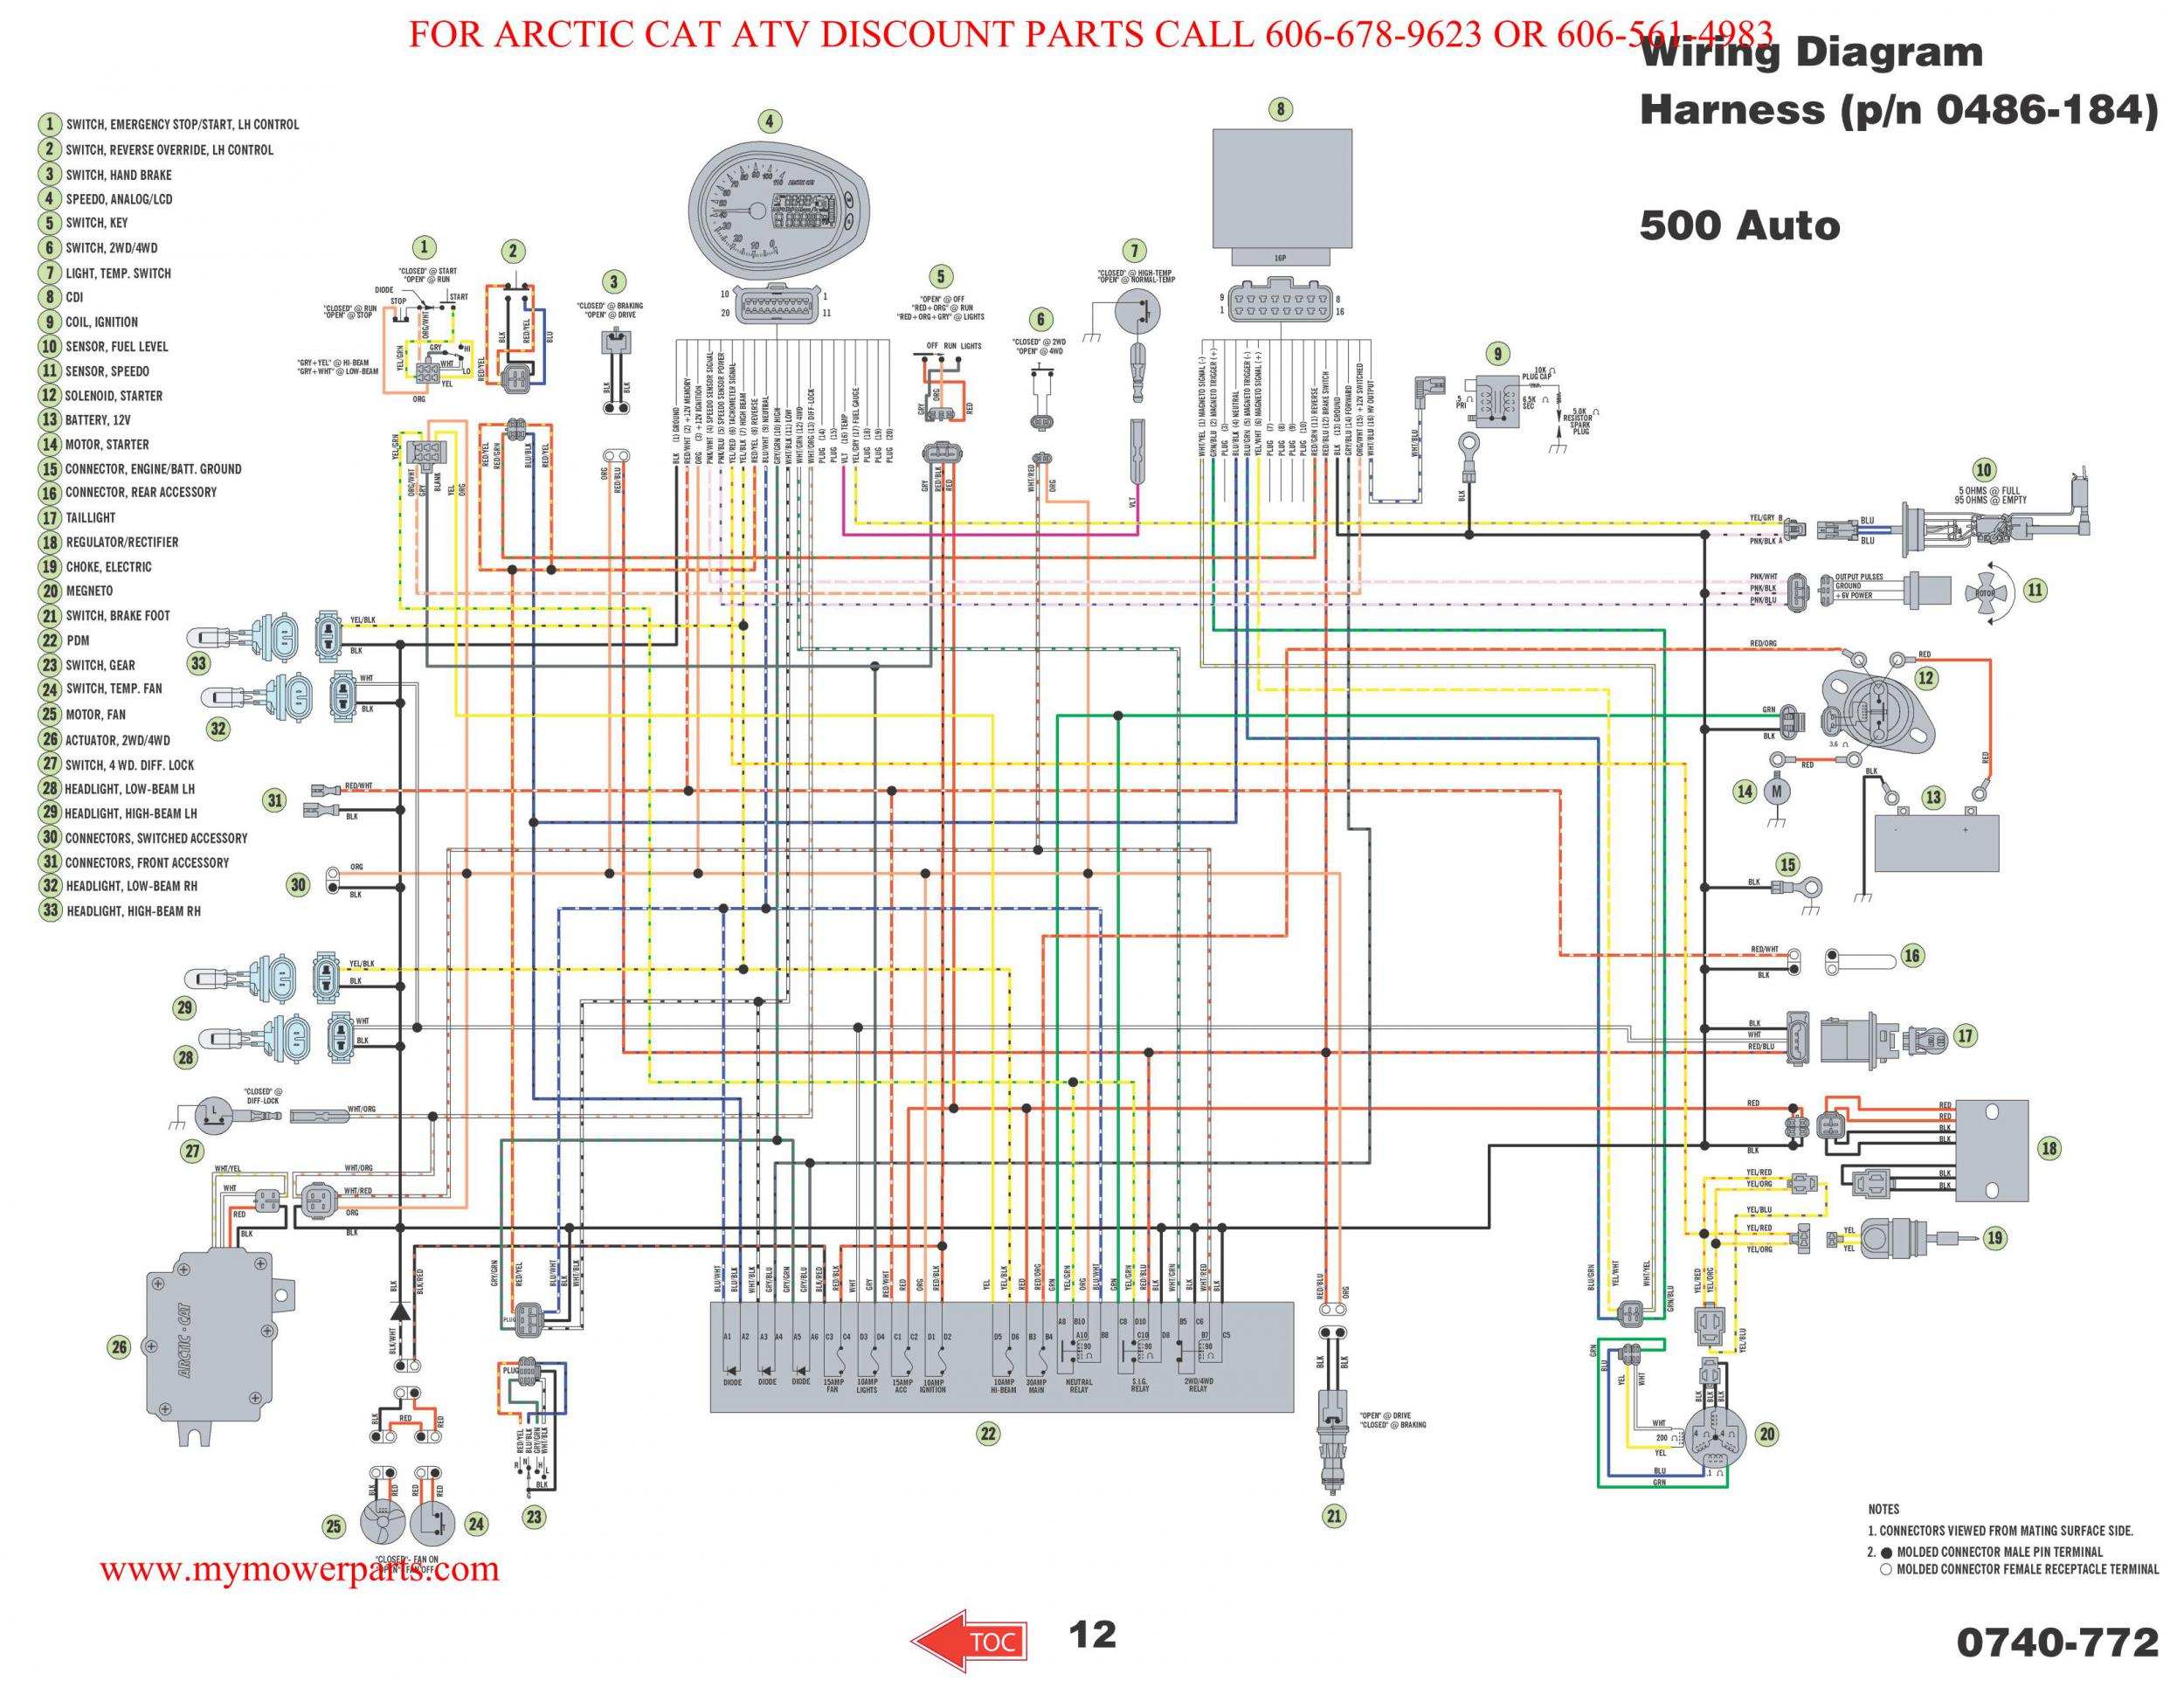 Polaris Rzr Winch Wiring Diagram Sample